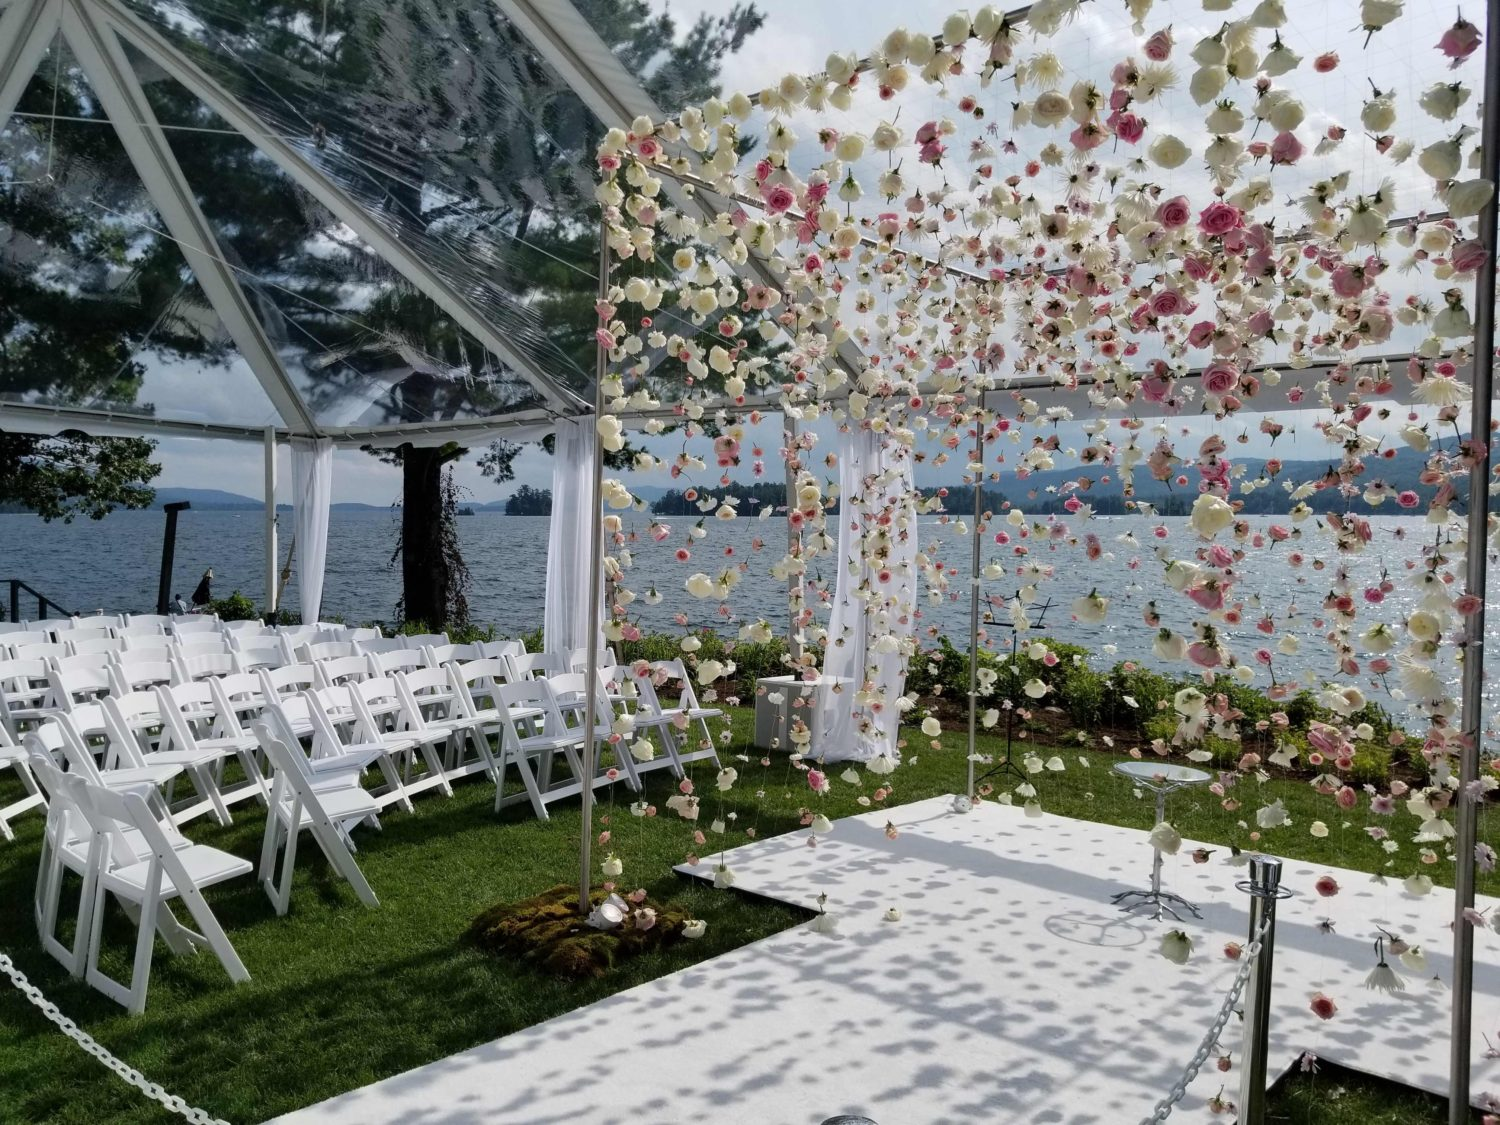 Lake George Ceremony White Aisle Runner Clear Roof Tent